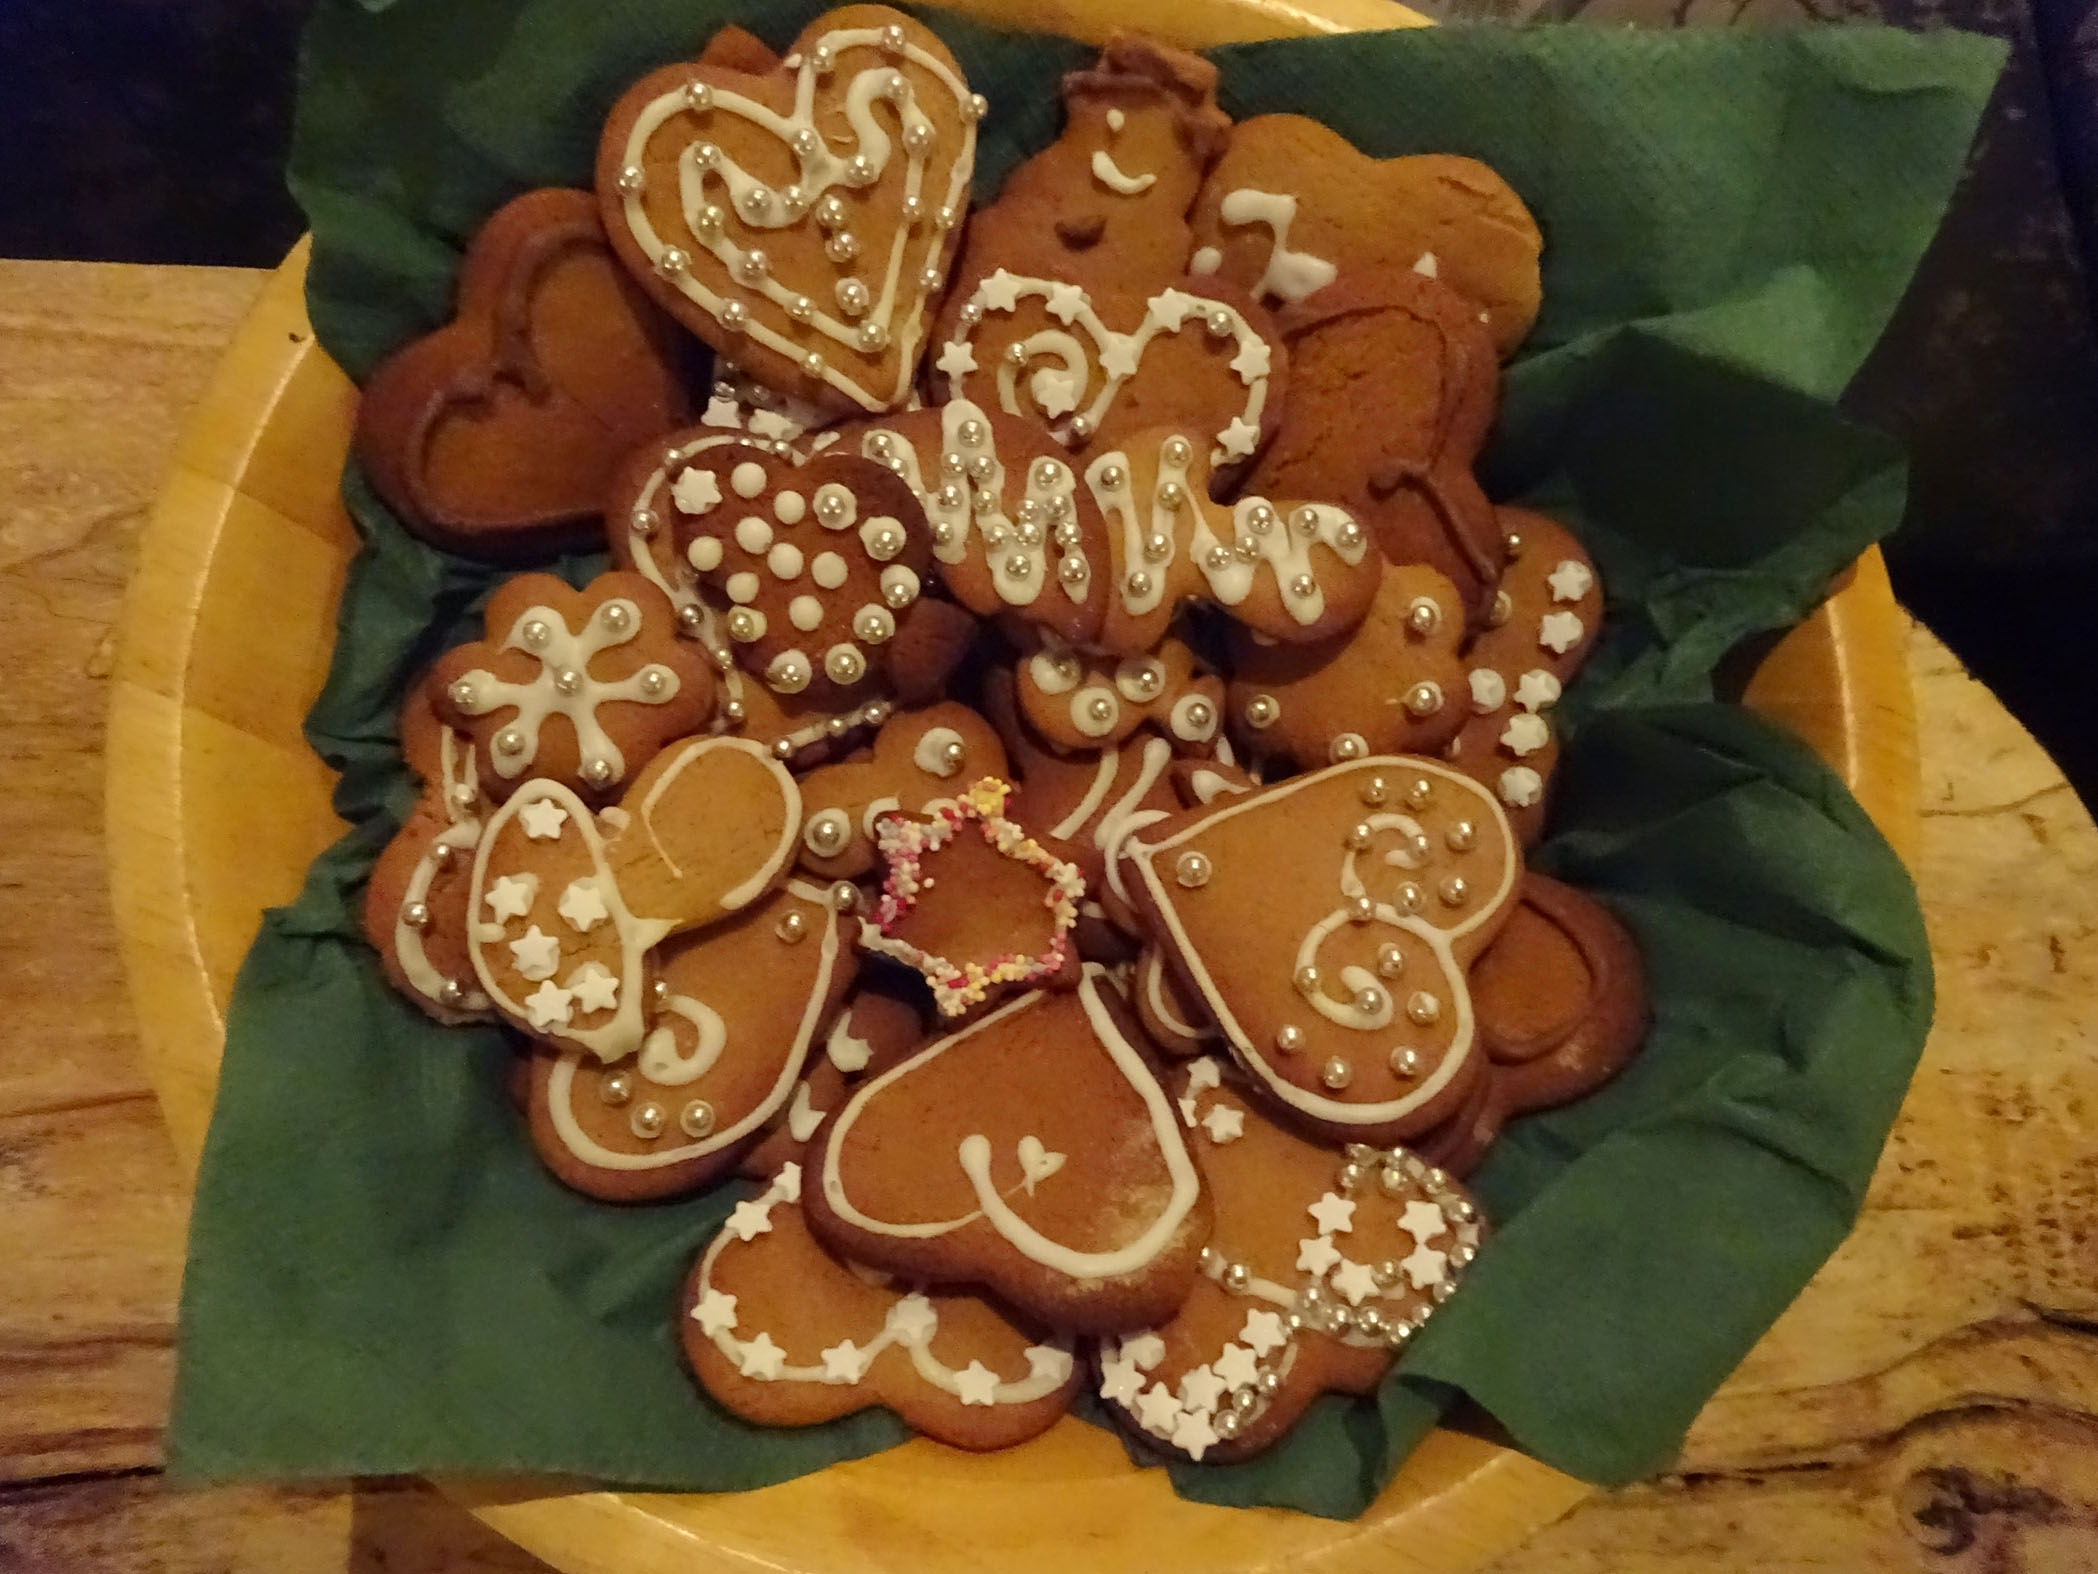 Yummy ginger biscuits